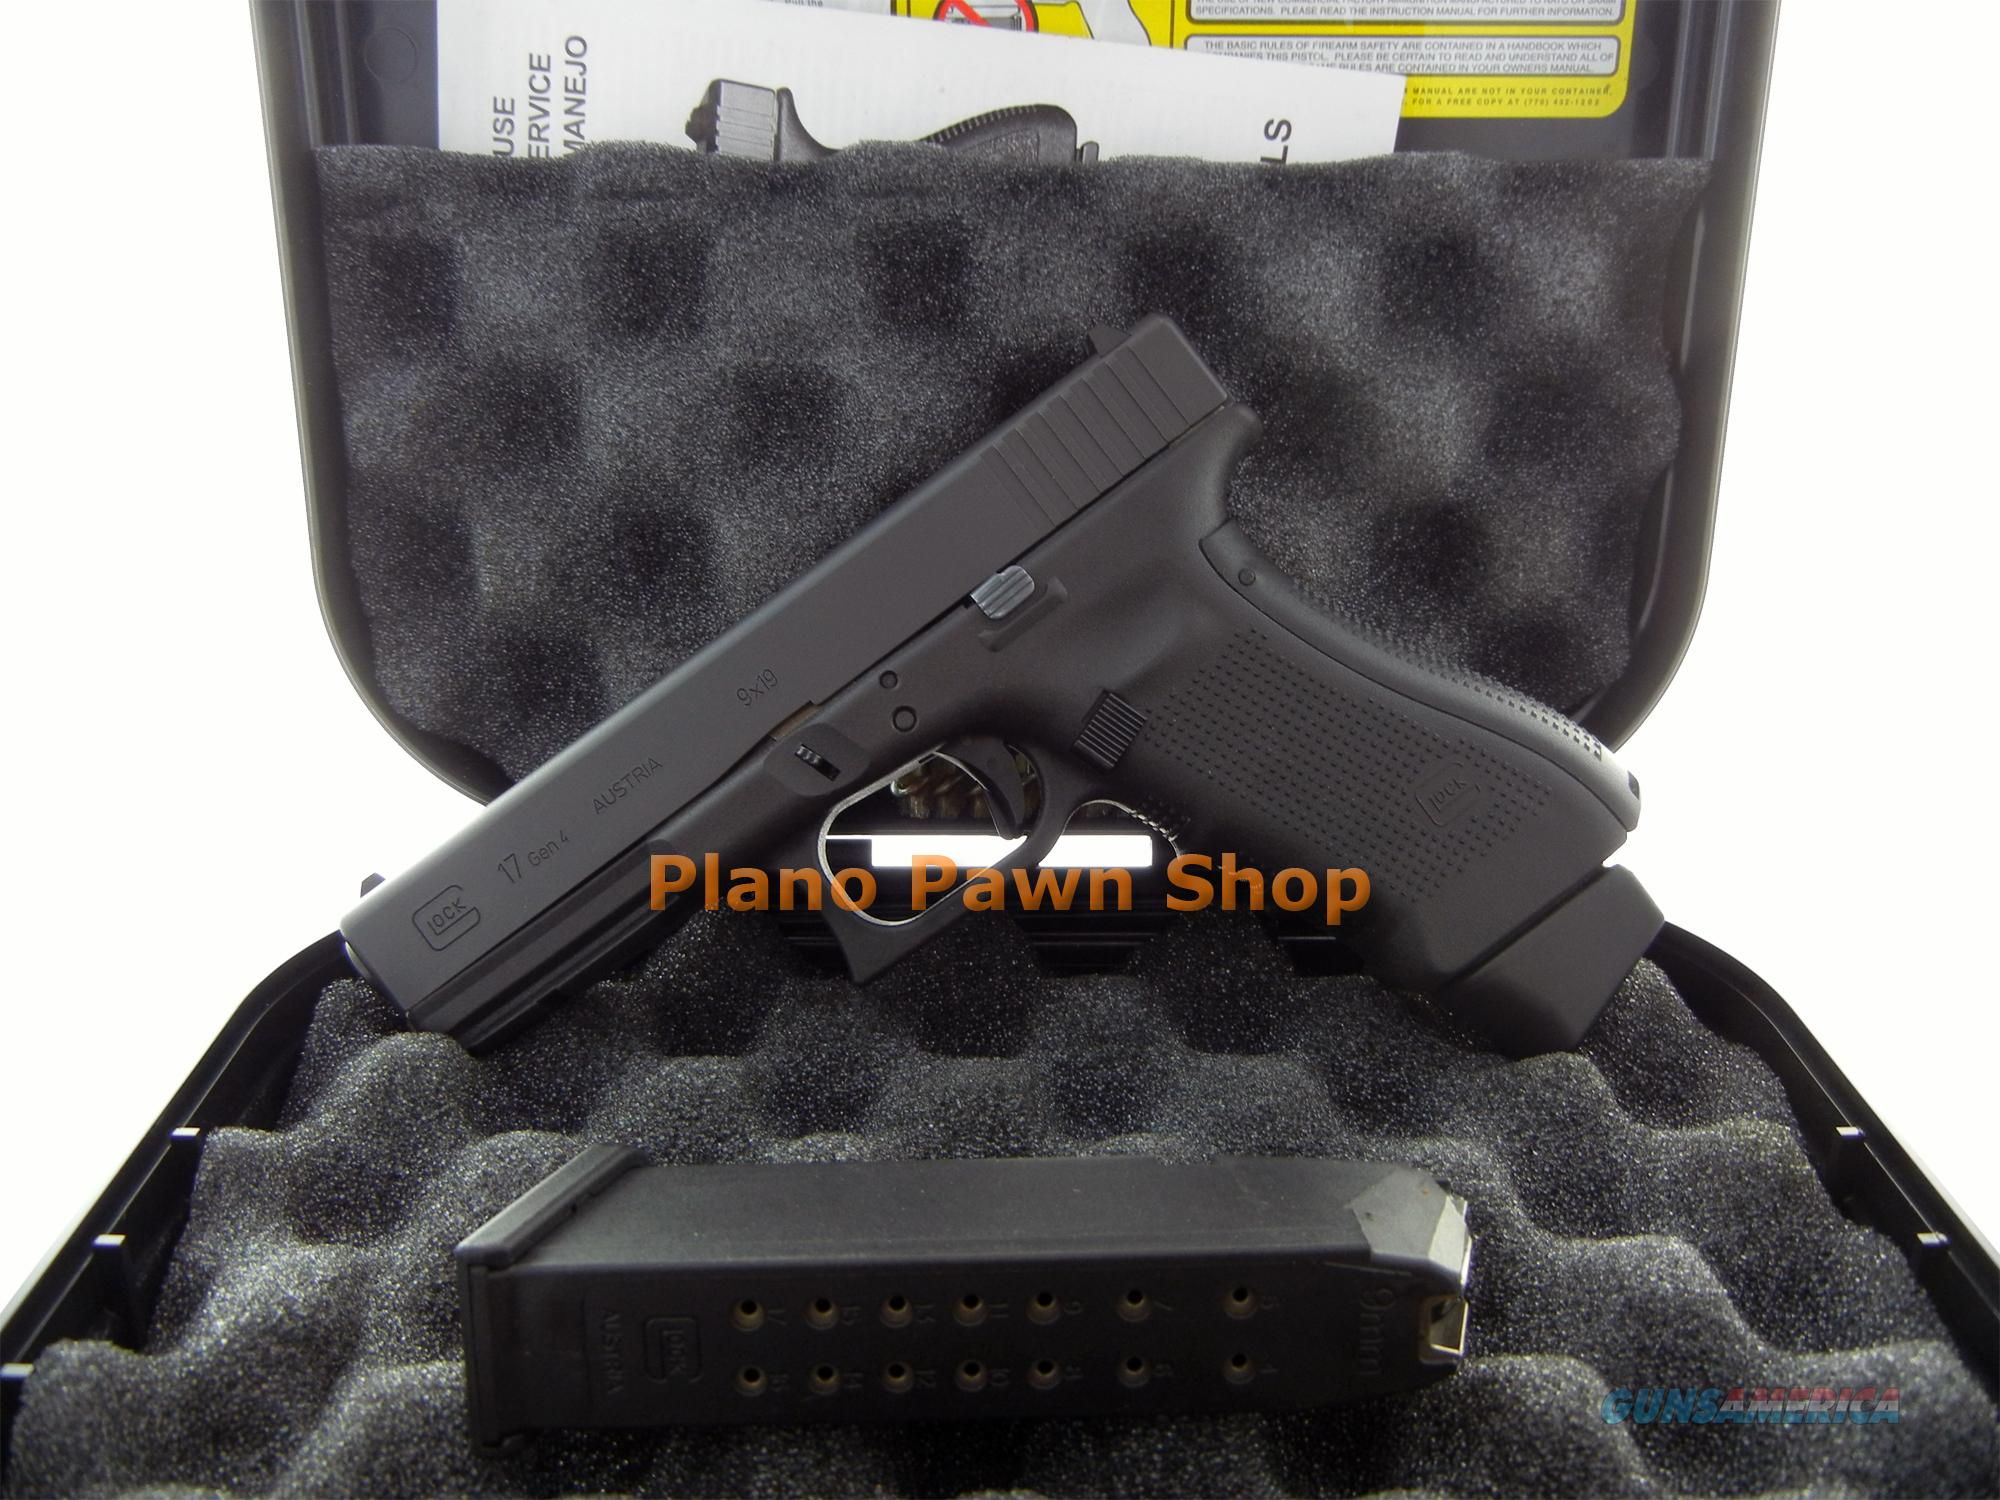 Glock Model 17 Gen 4 9mm in Case with 2 High Capacity Mags  Guns > Pistols > Glock Pistols > 17